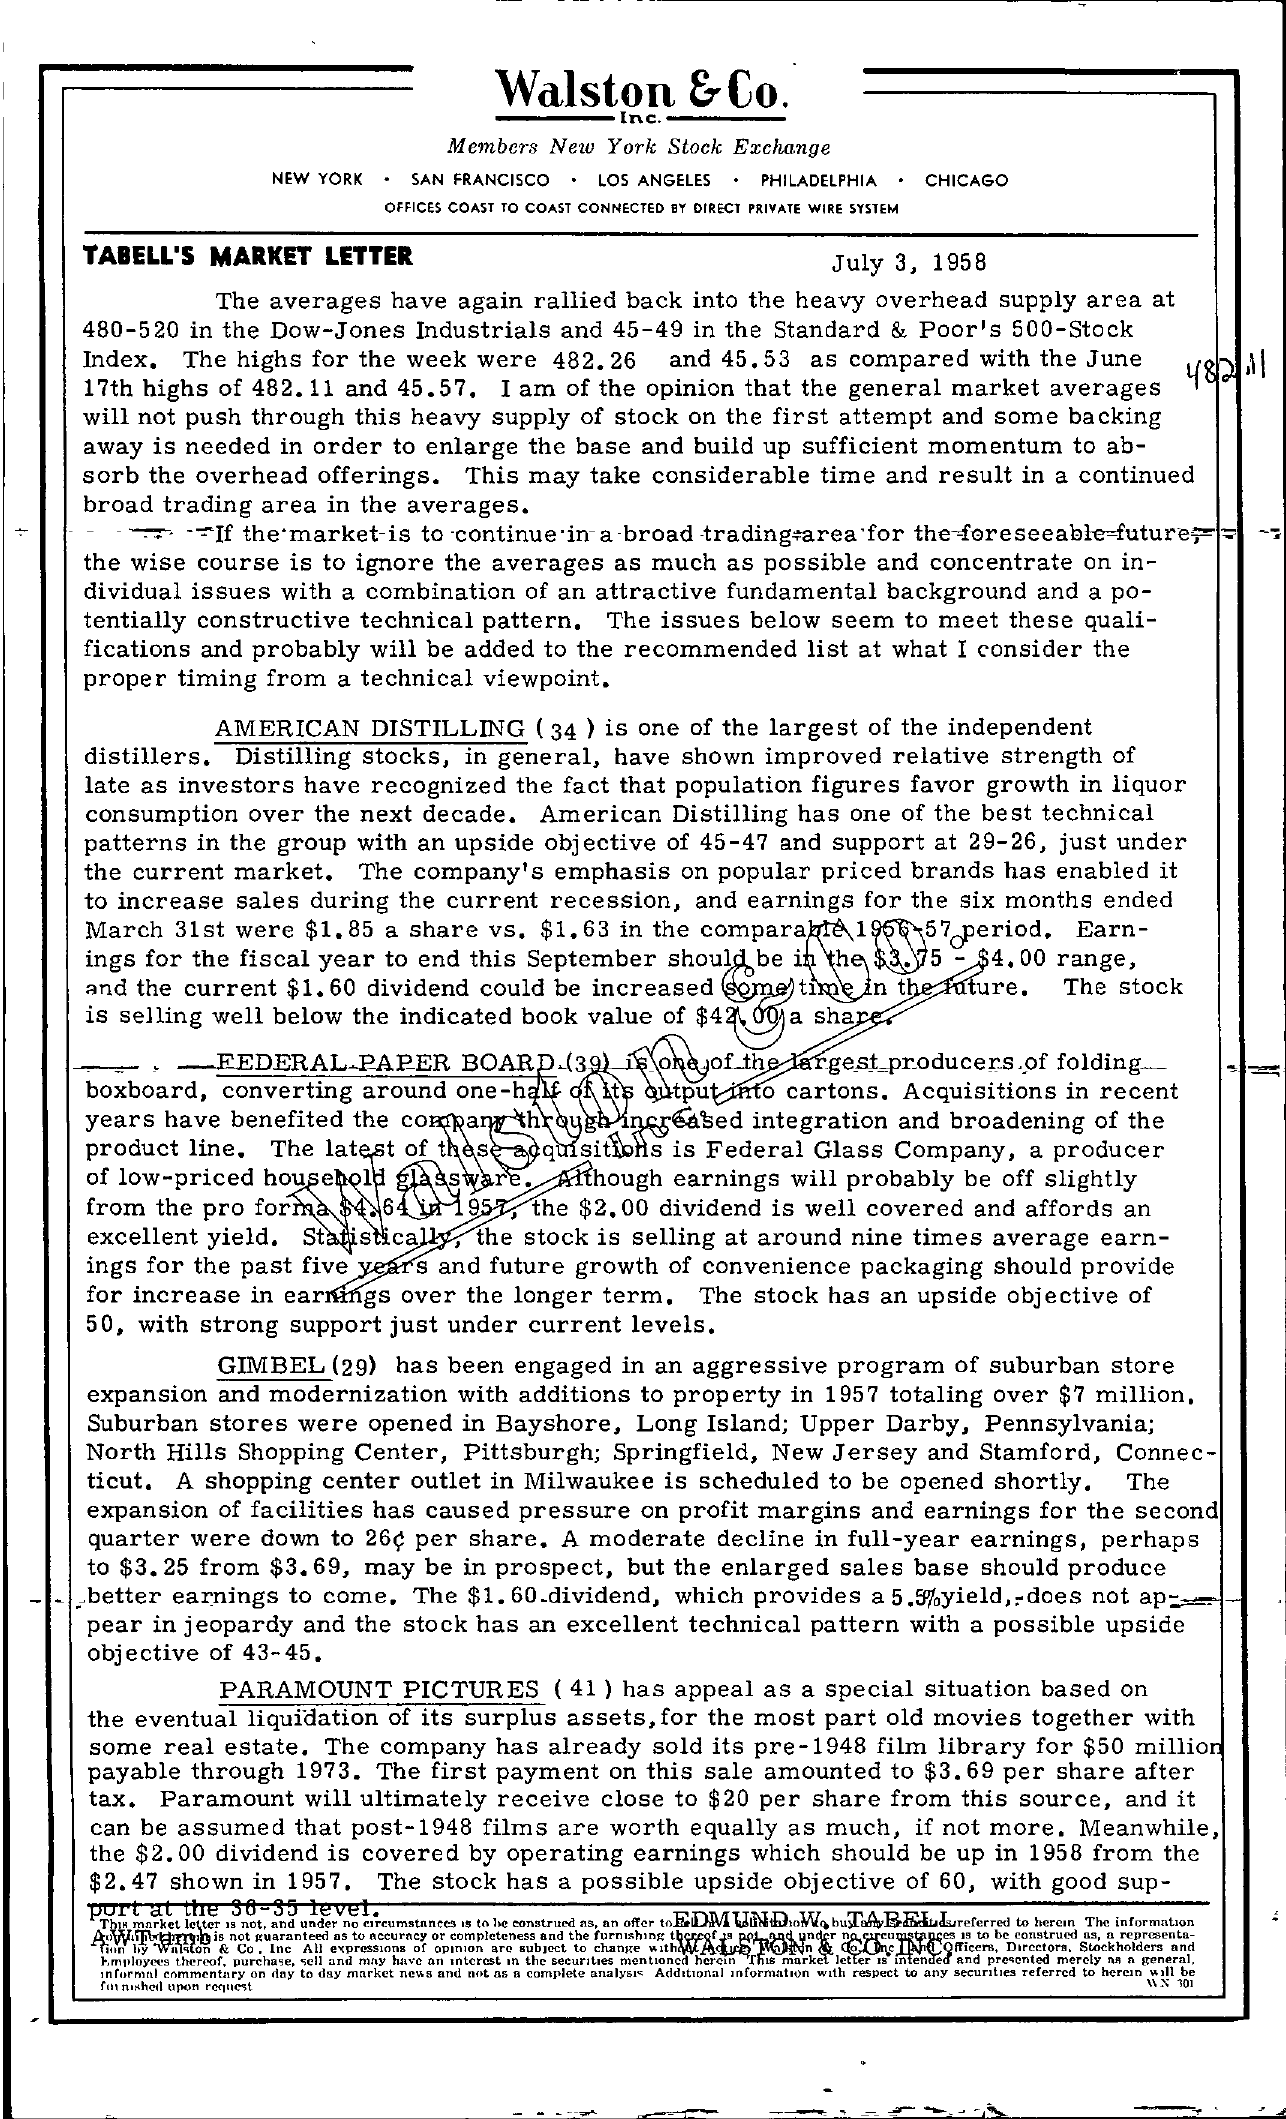 Tabell's Market Letter - July 03, 1958